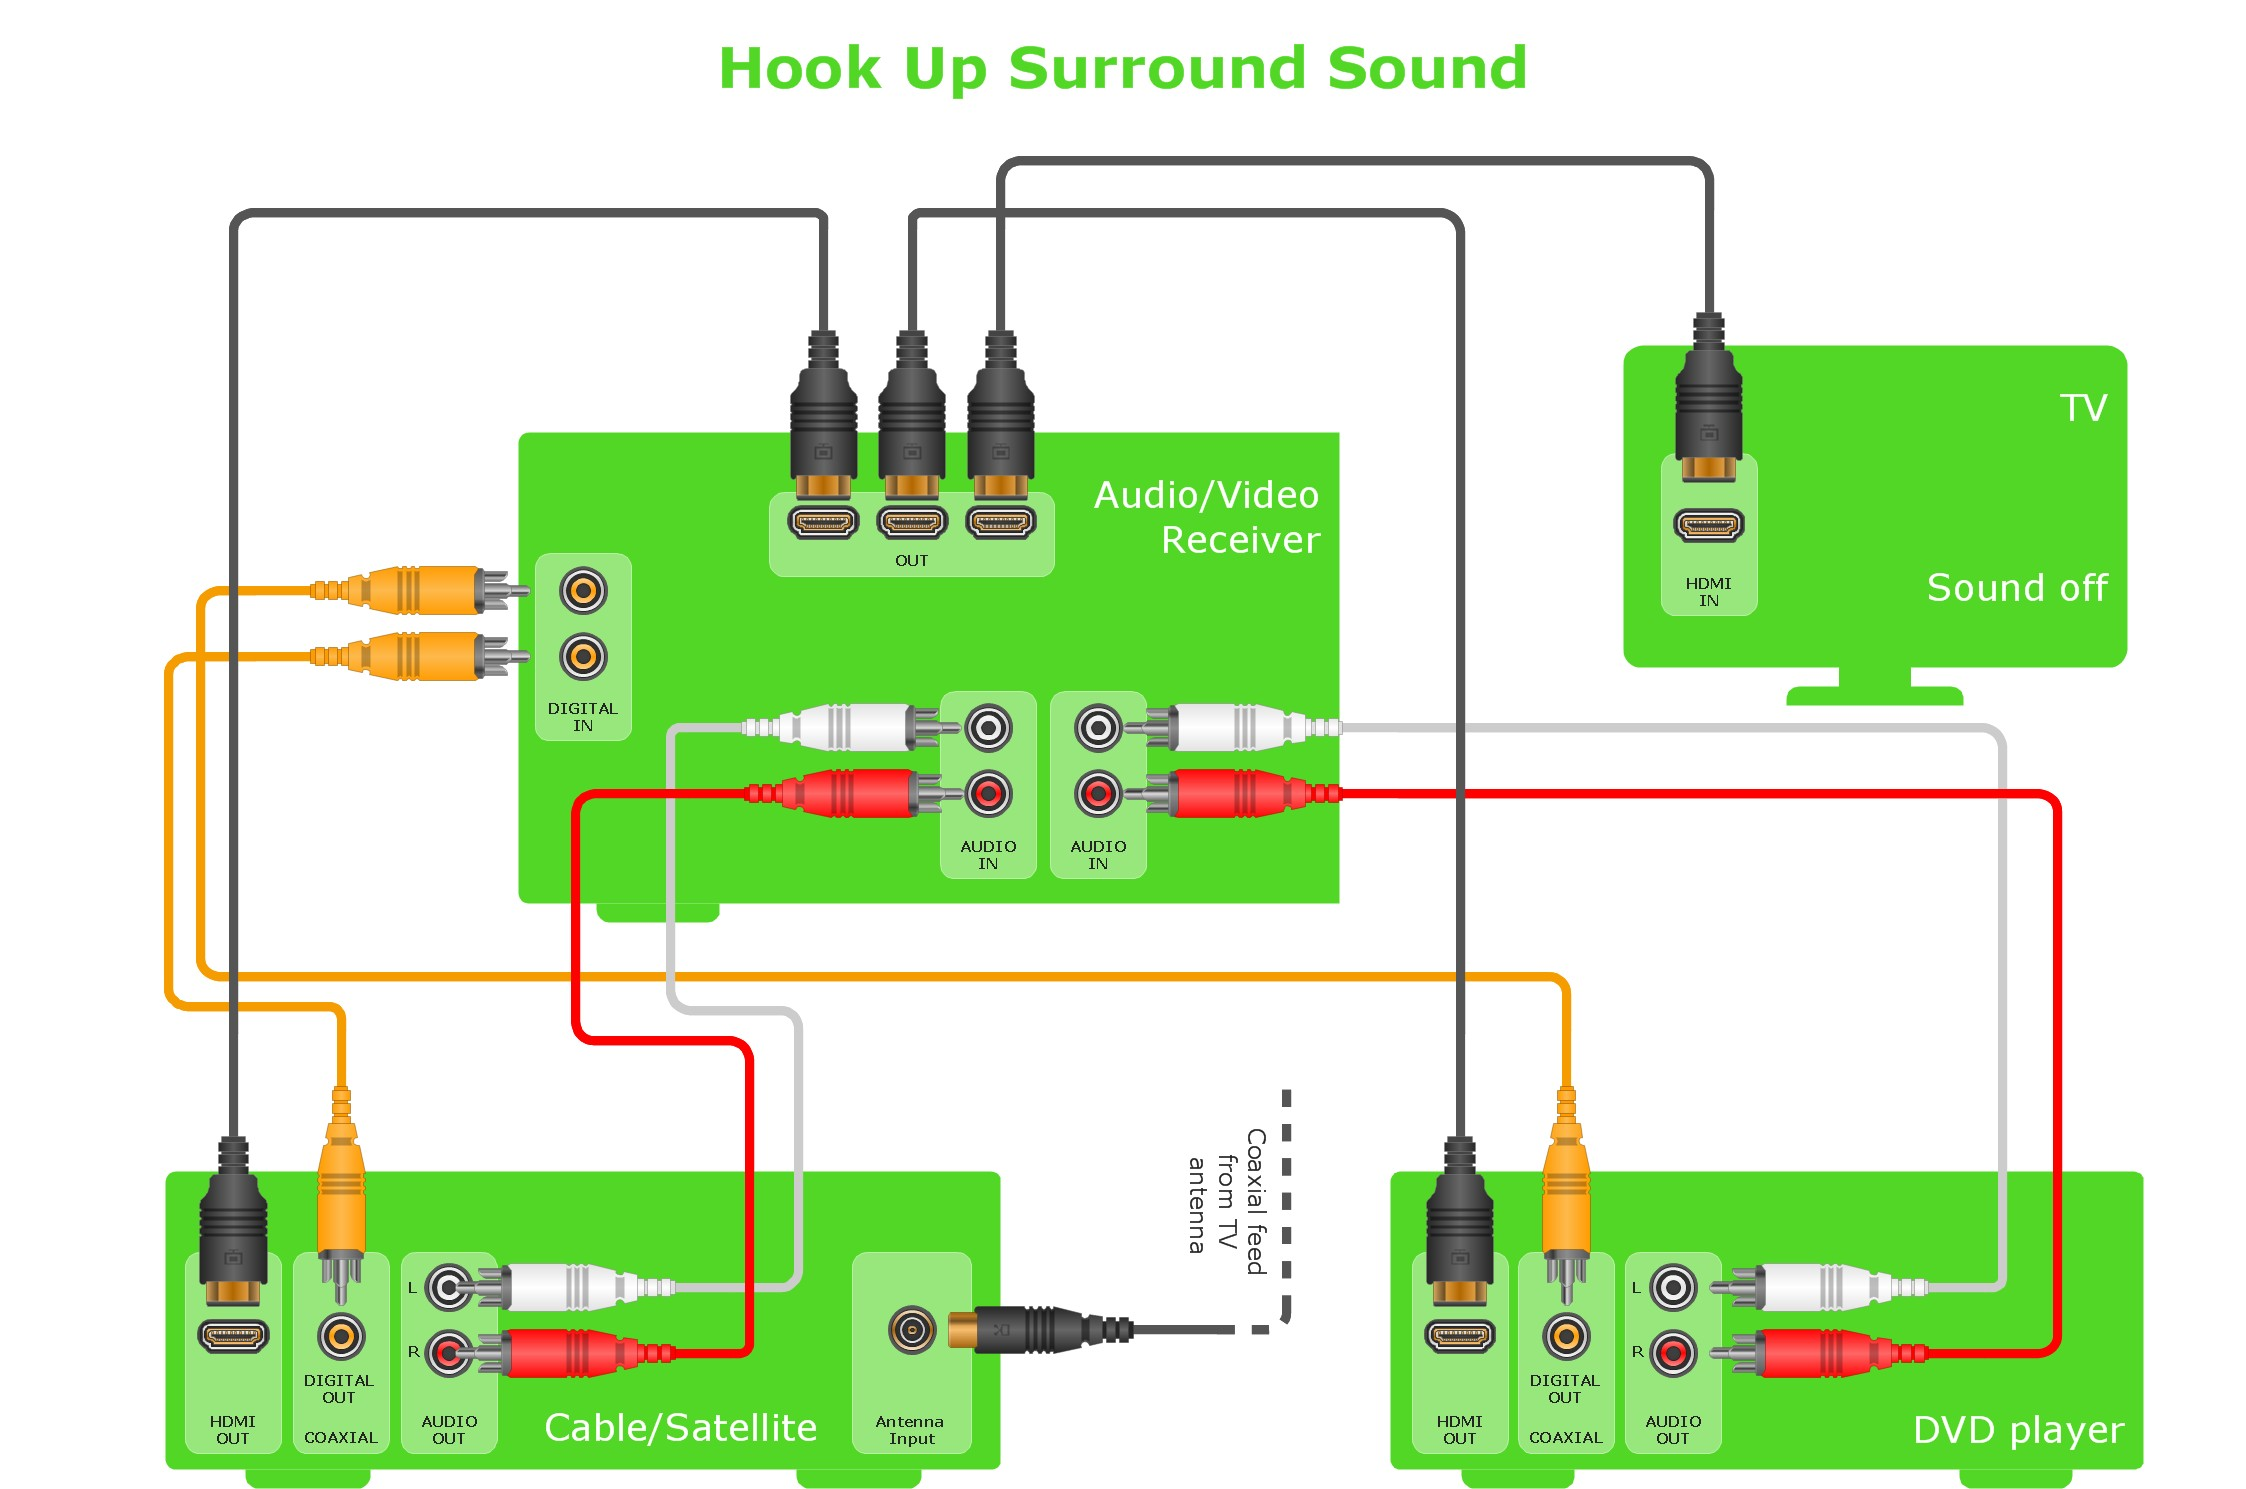 Hookup diagram Home entertainment system with surround sound